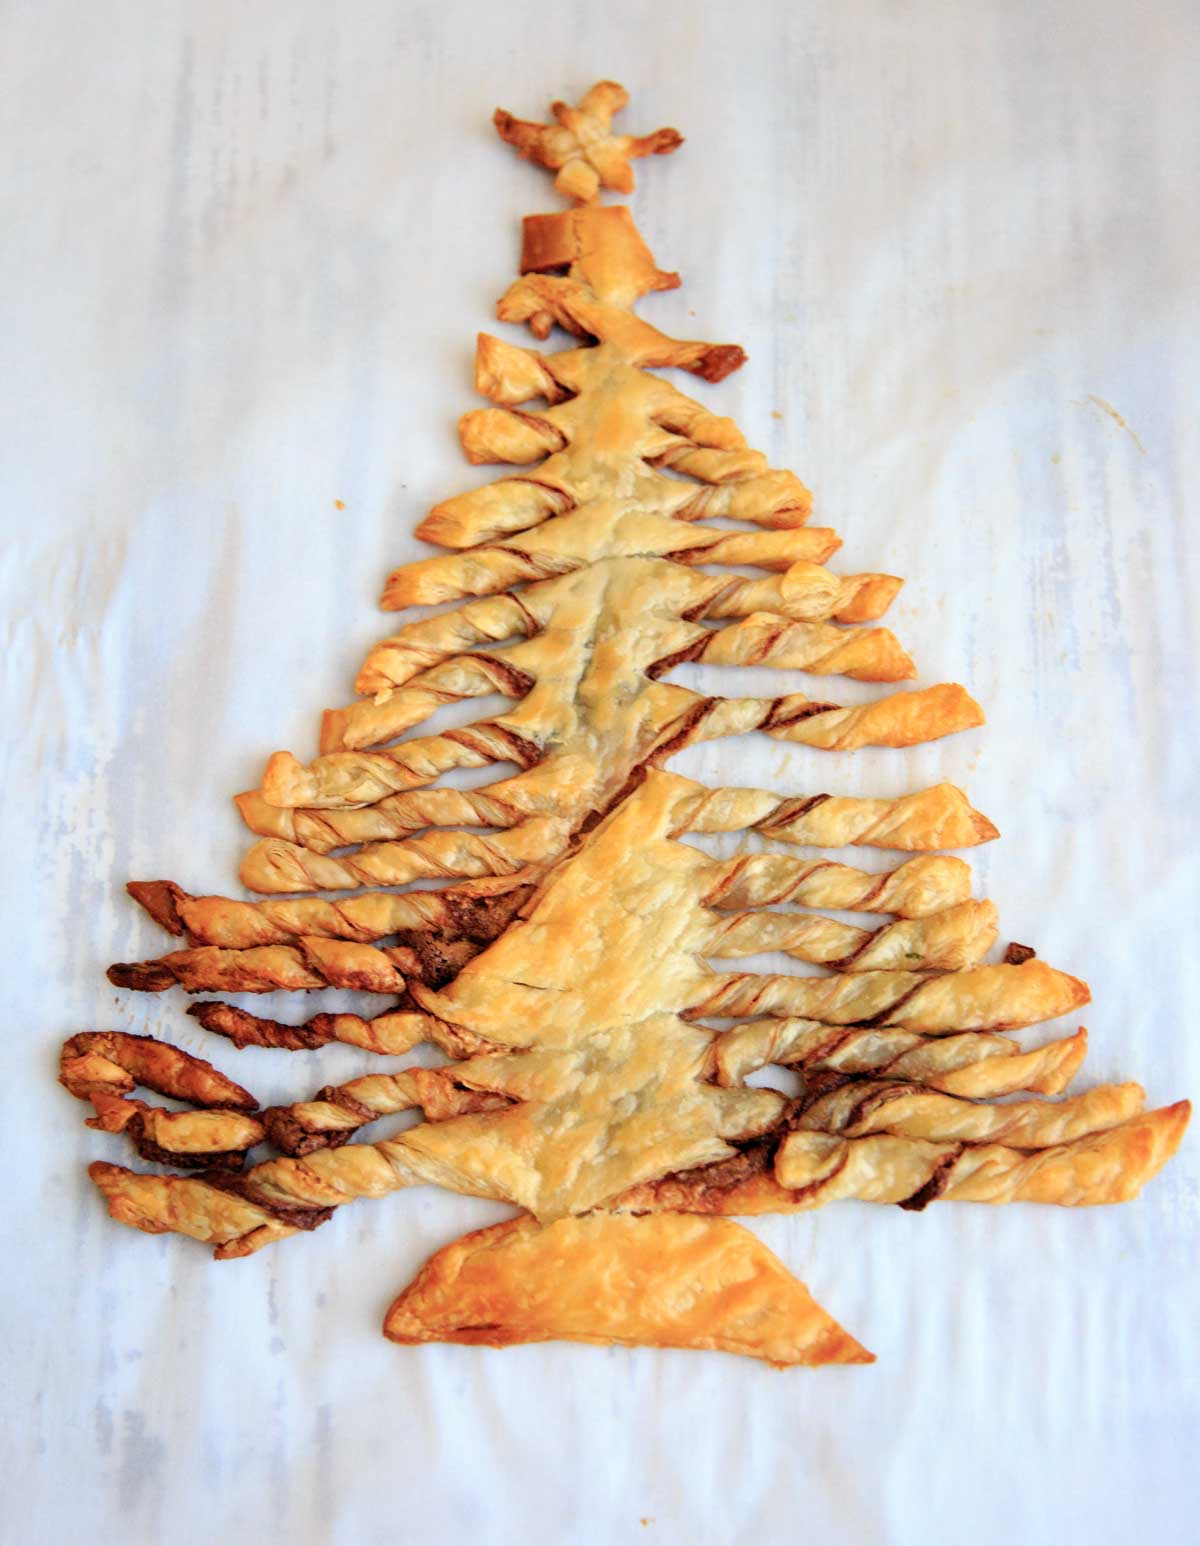 The Nutella and peanut butter puff pastry Christmas tree dessert, after baking